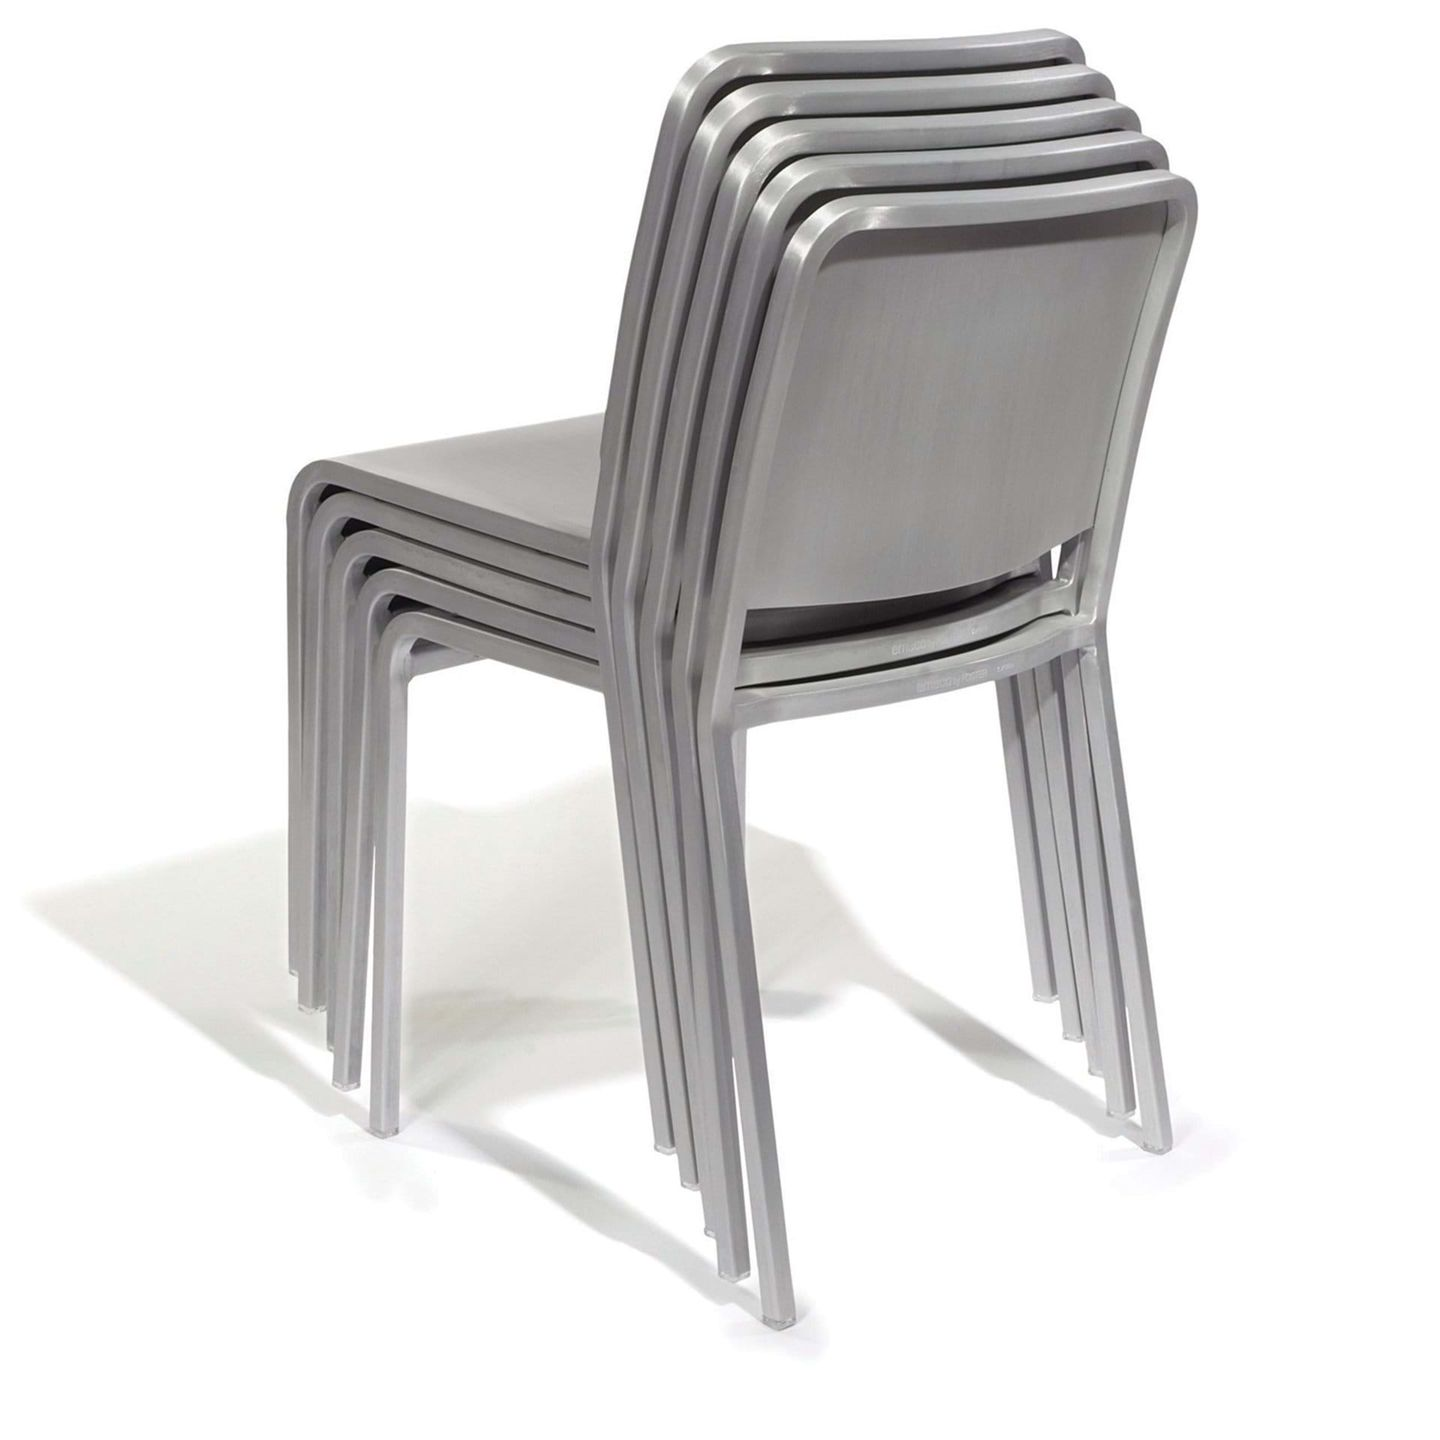 Emeco Chair, Norman Foster, 2006